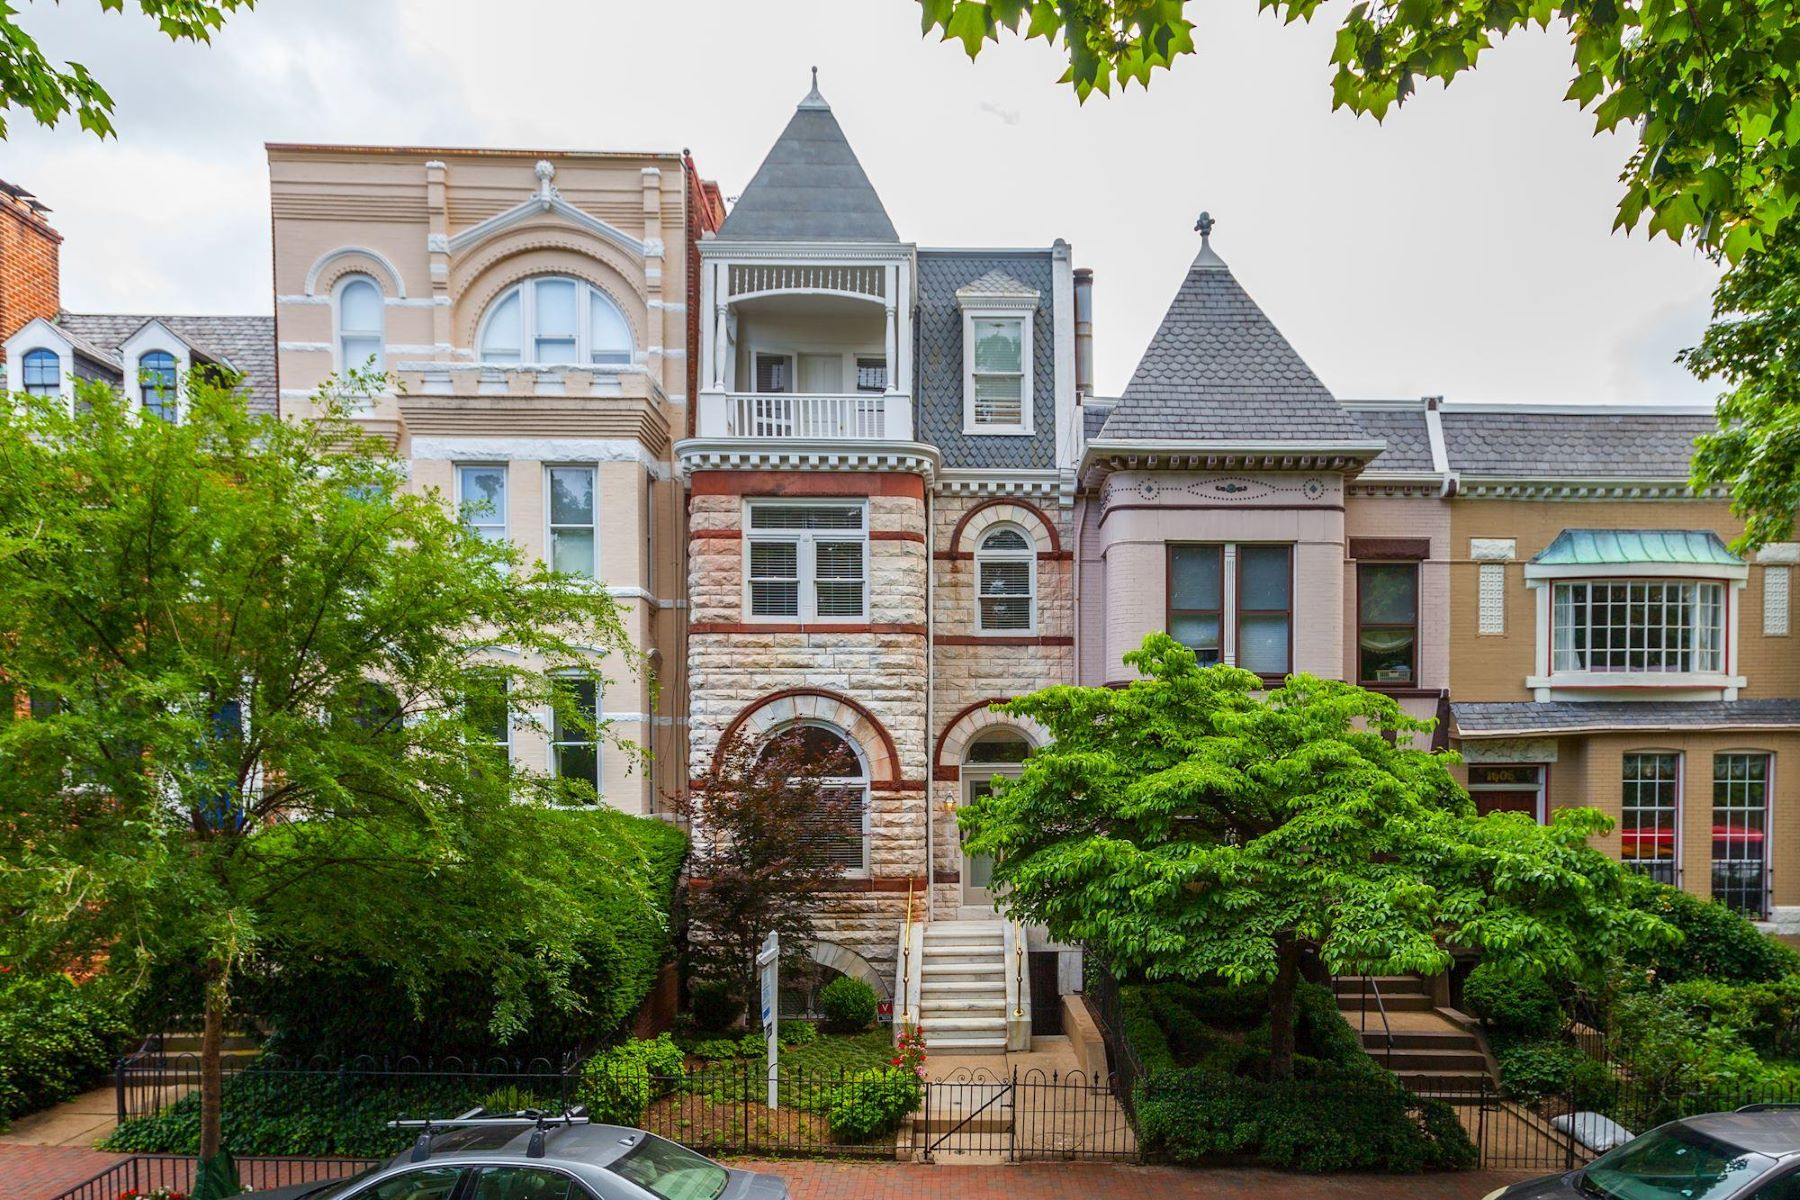 Townhouse for Sale at 1609 35th St NW 1609 35th St NW Washington, District Of Columbia 20007 United States